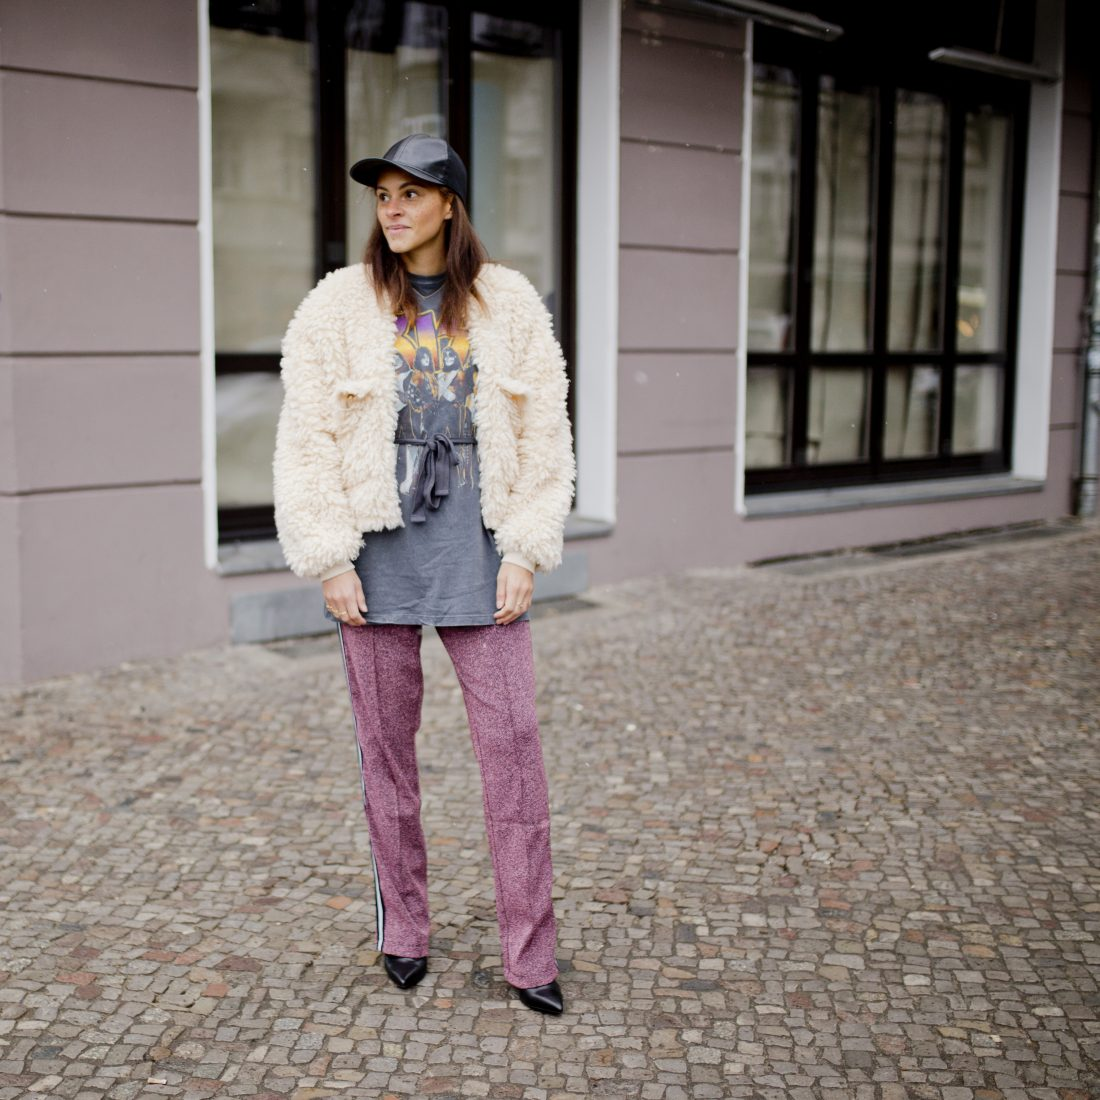 fashionblogger Berlin Germany